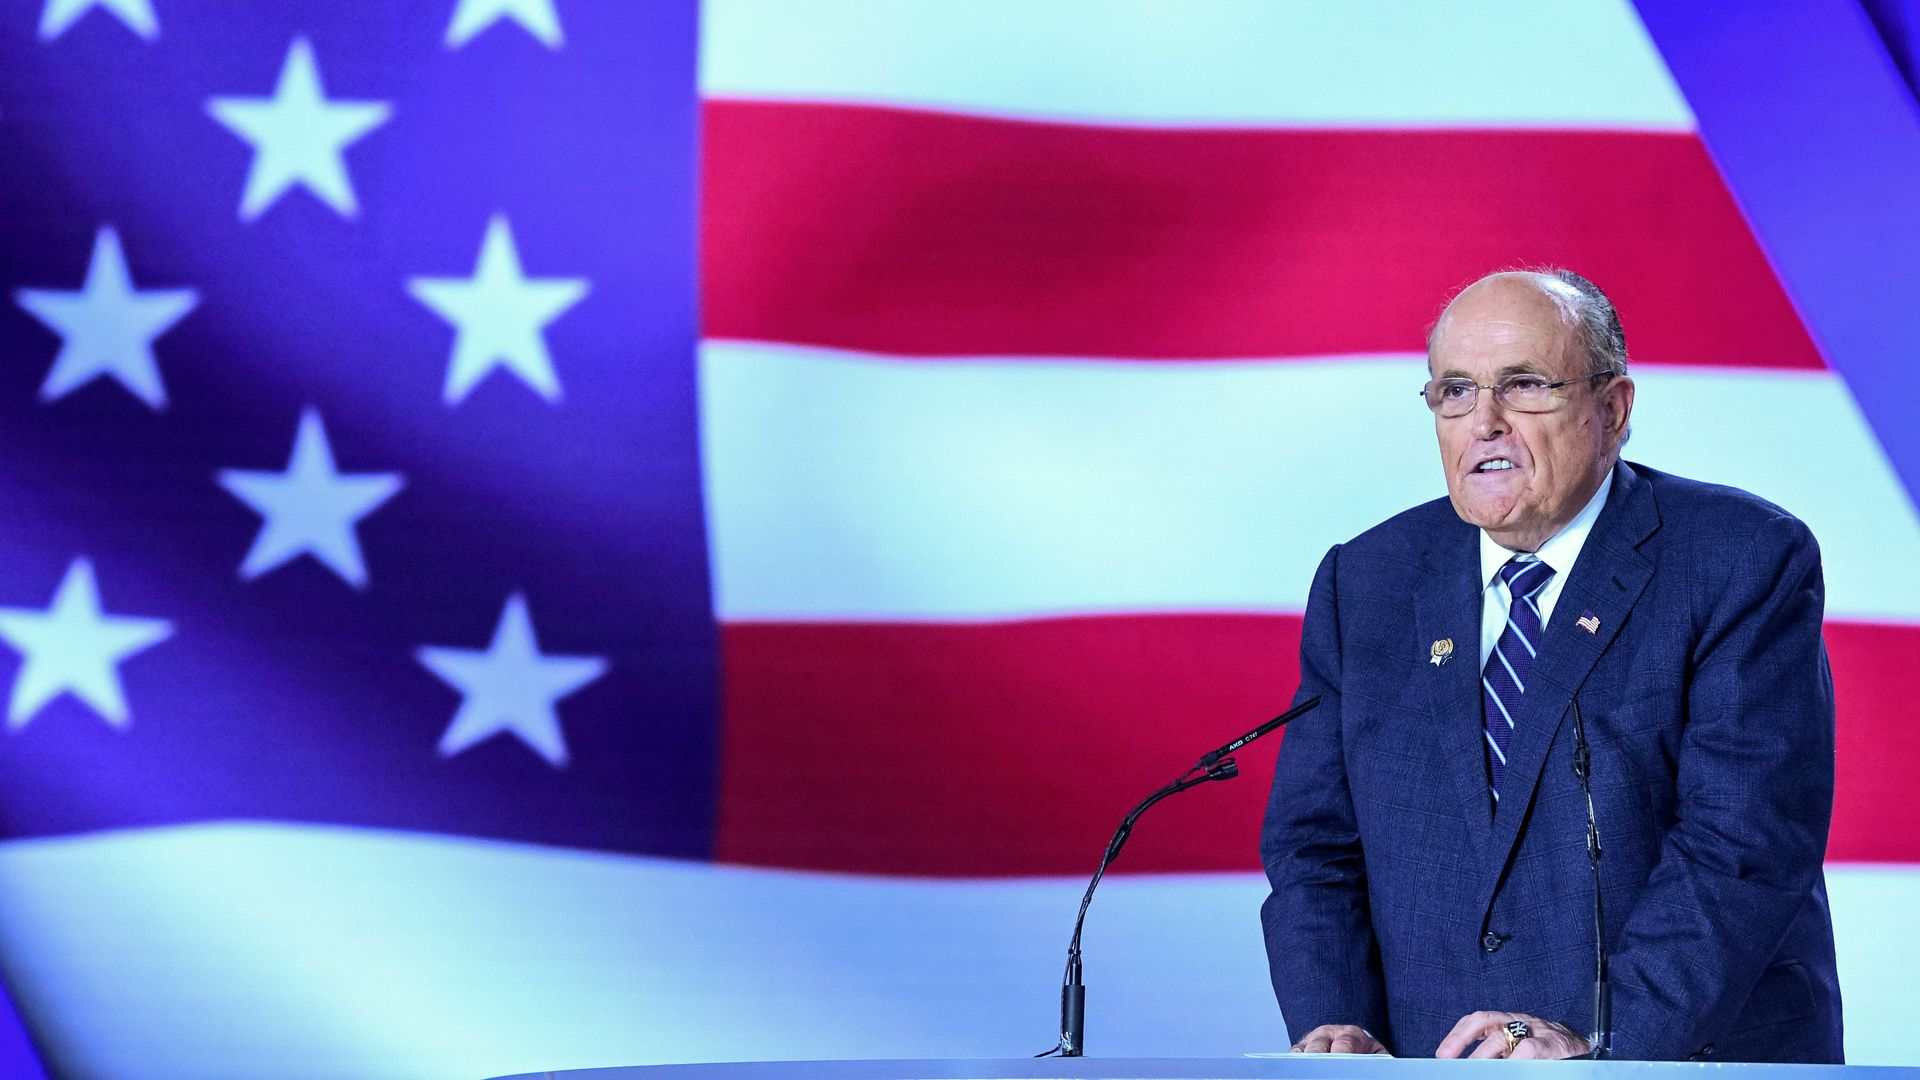 Former Mayor of New York City Rudy Giuliani at a conference at Ashraf-3 camp, which is a base for the People's Mojahedin Organization of Iran (MEK) in Albania on July 13